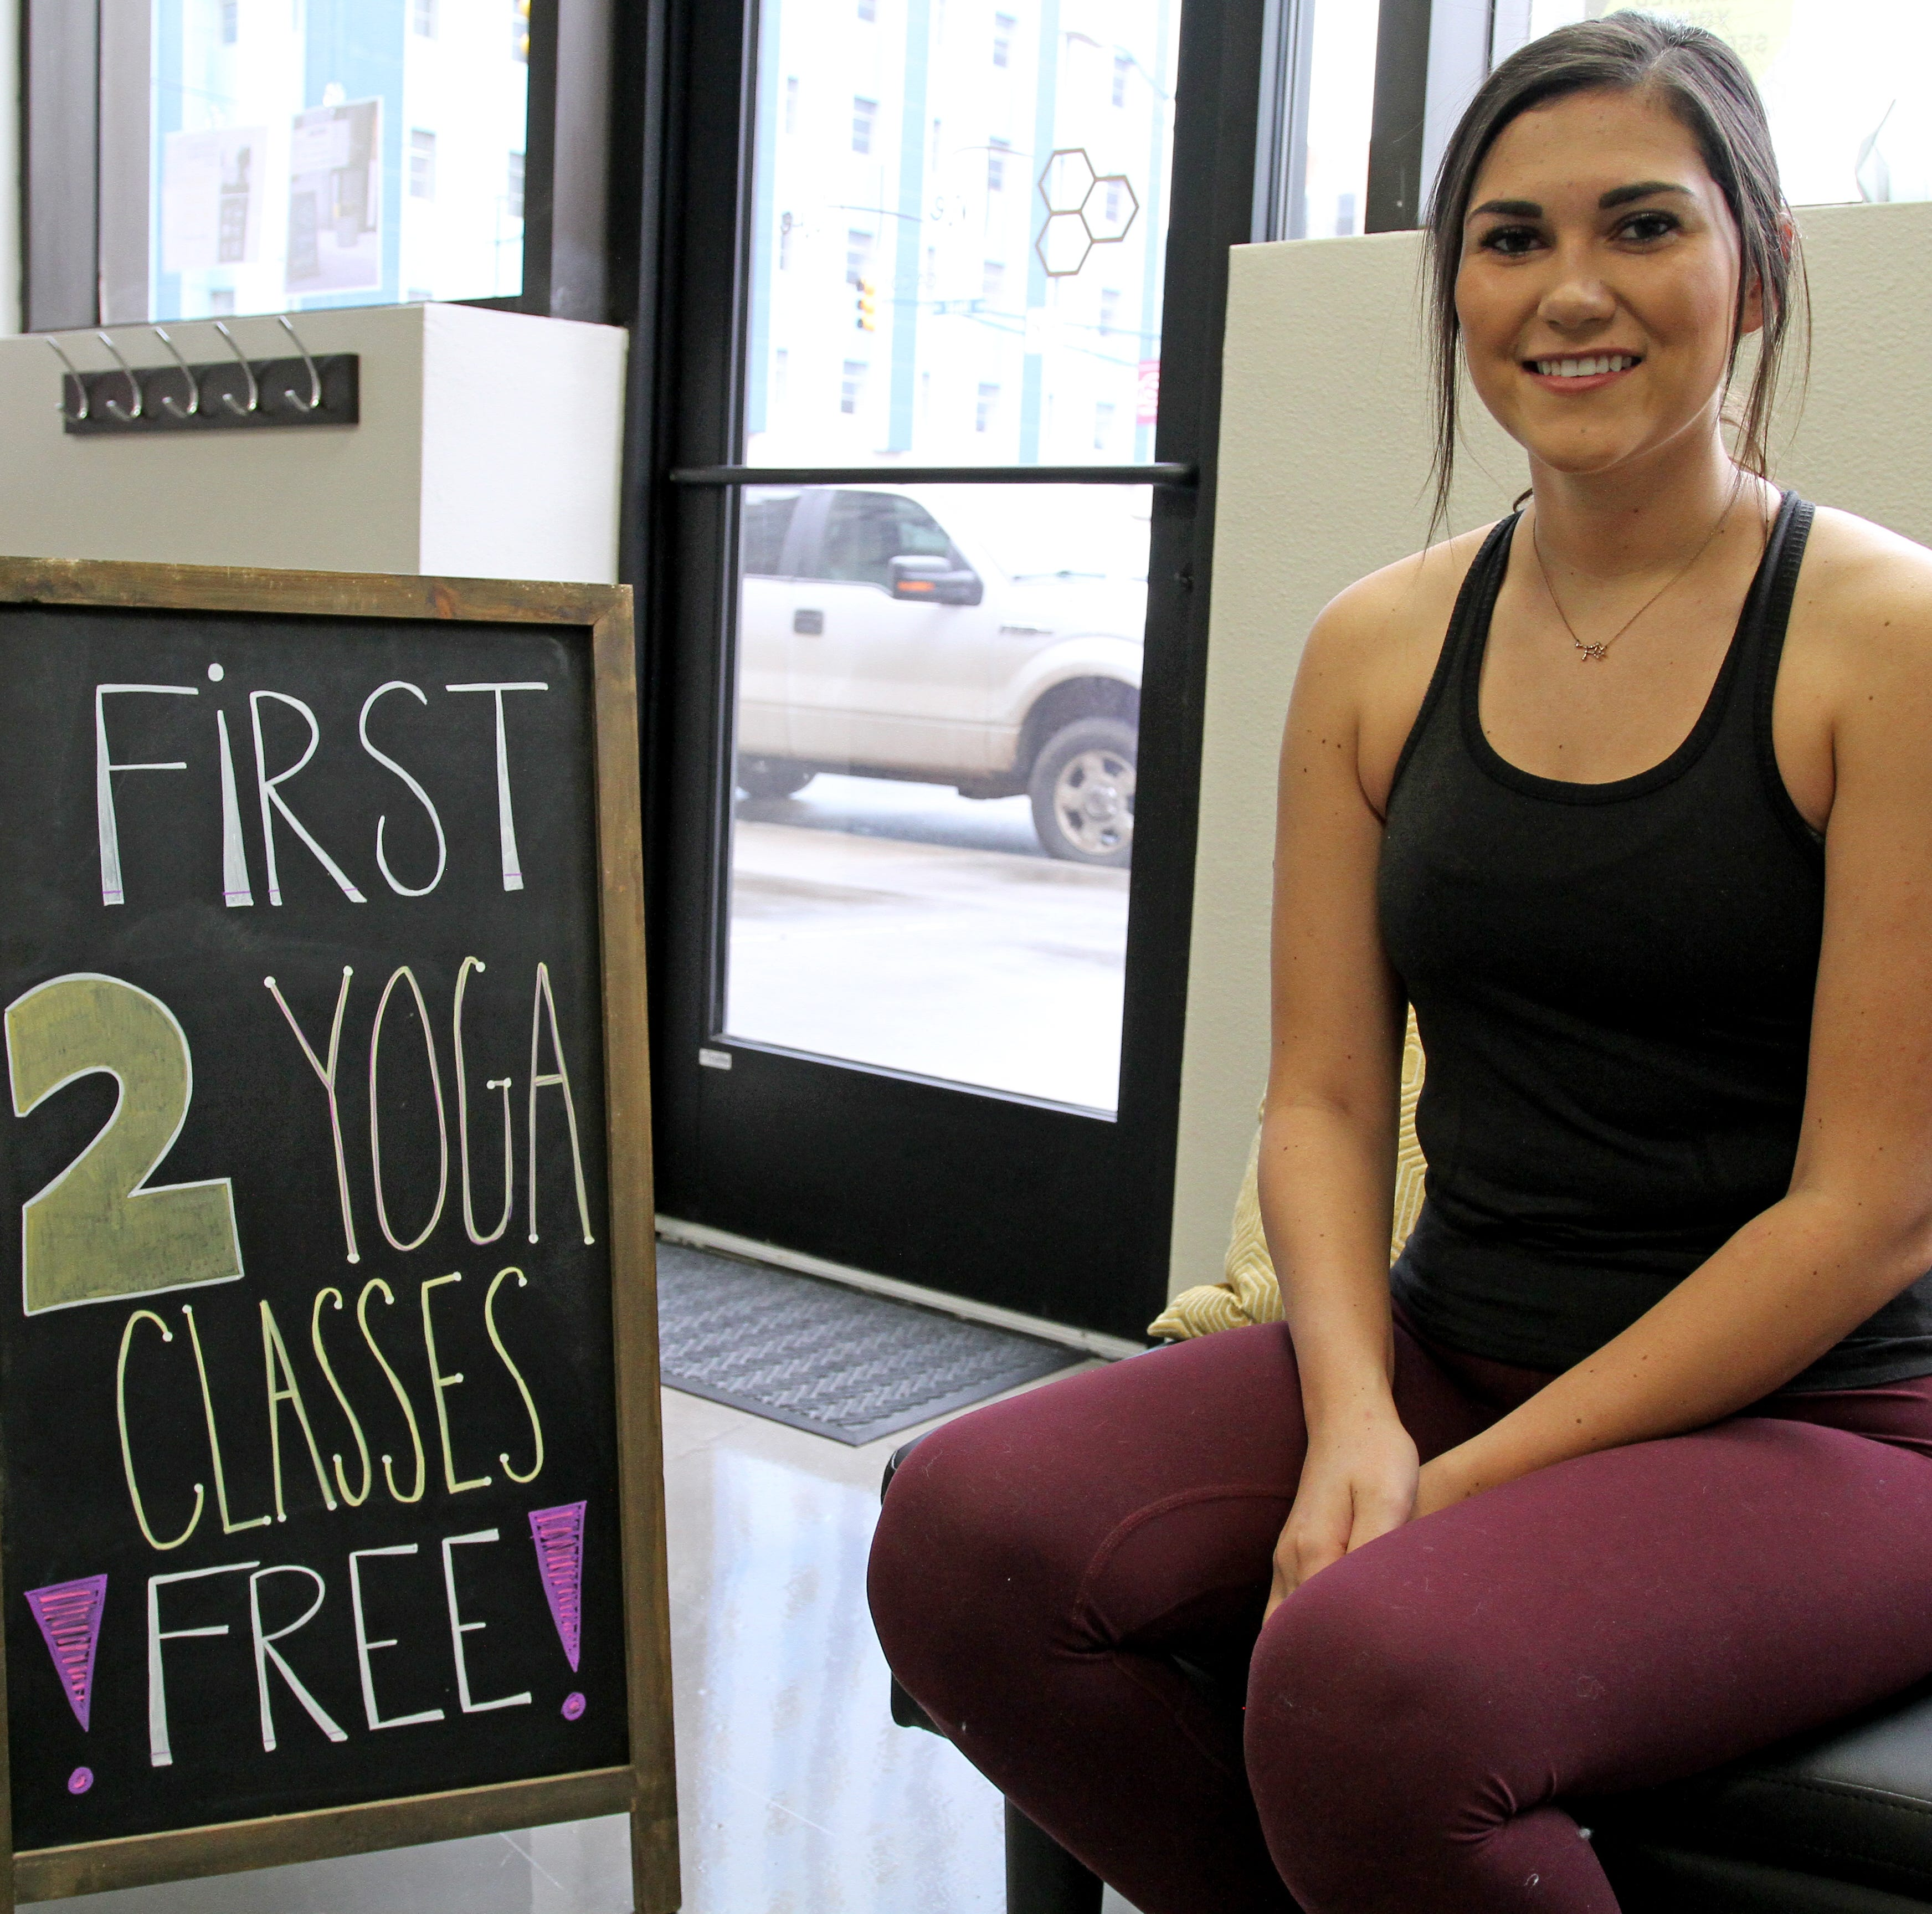 Native Wichitan puts emphasis on community in her new yoga studio